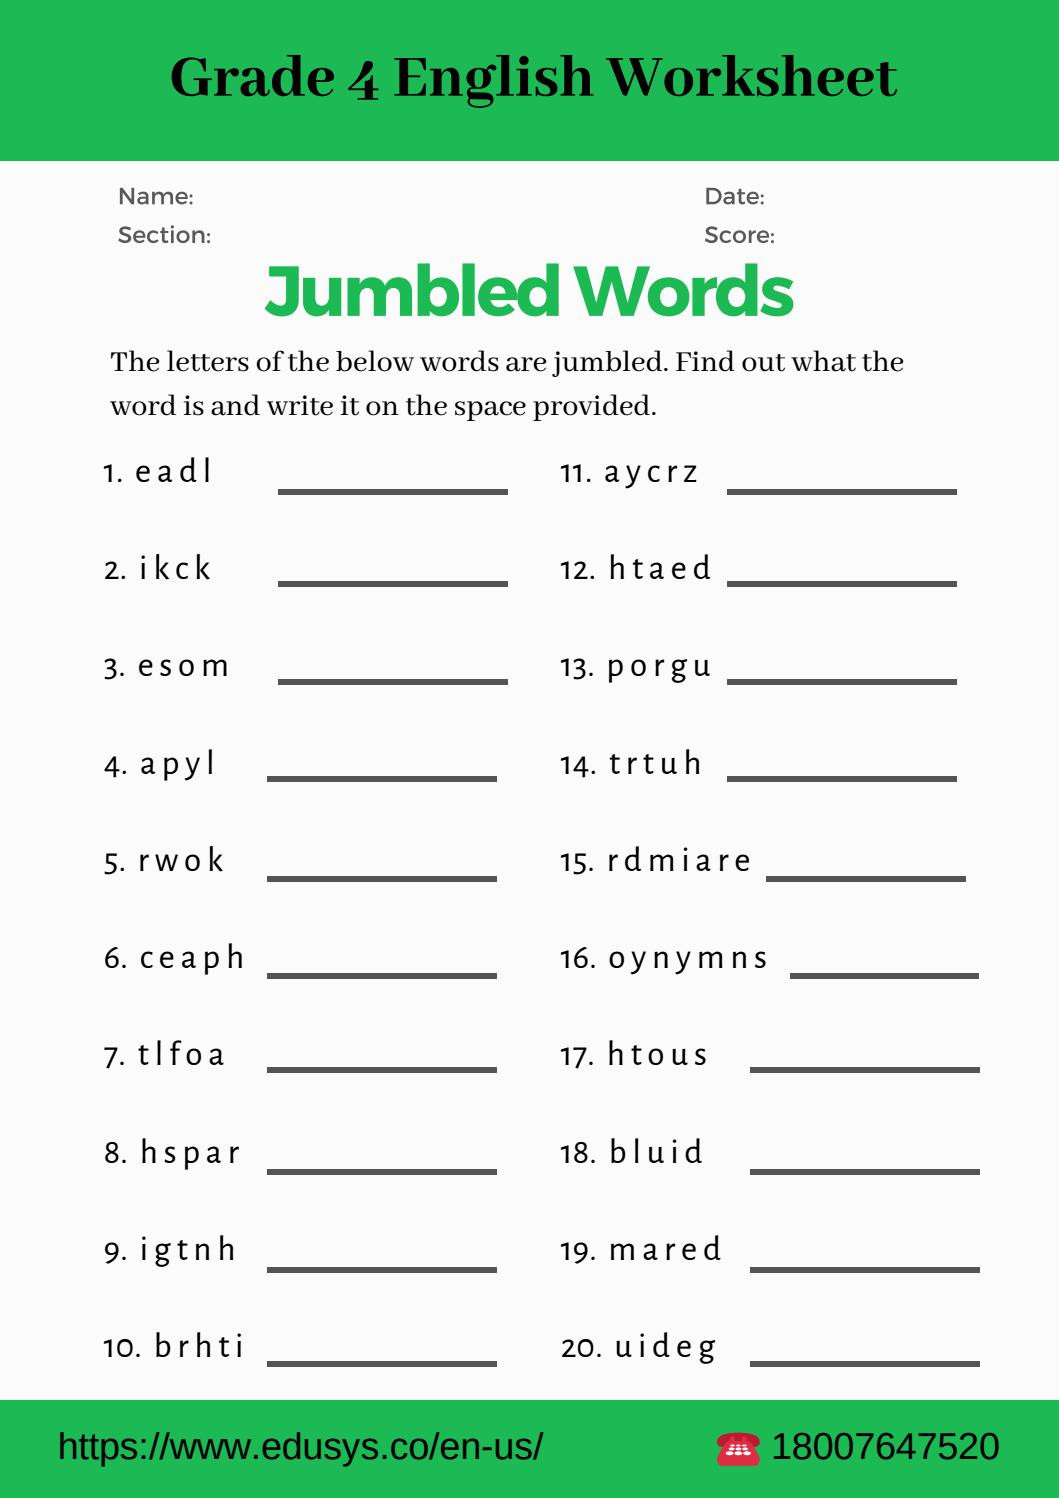 4th Grade Vocabulary Worksheets 4th Grade English Vocabulary Worksheet Pdf by Nithya issuu